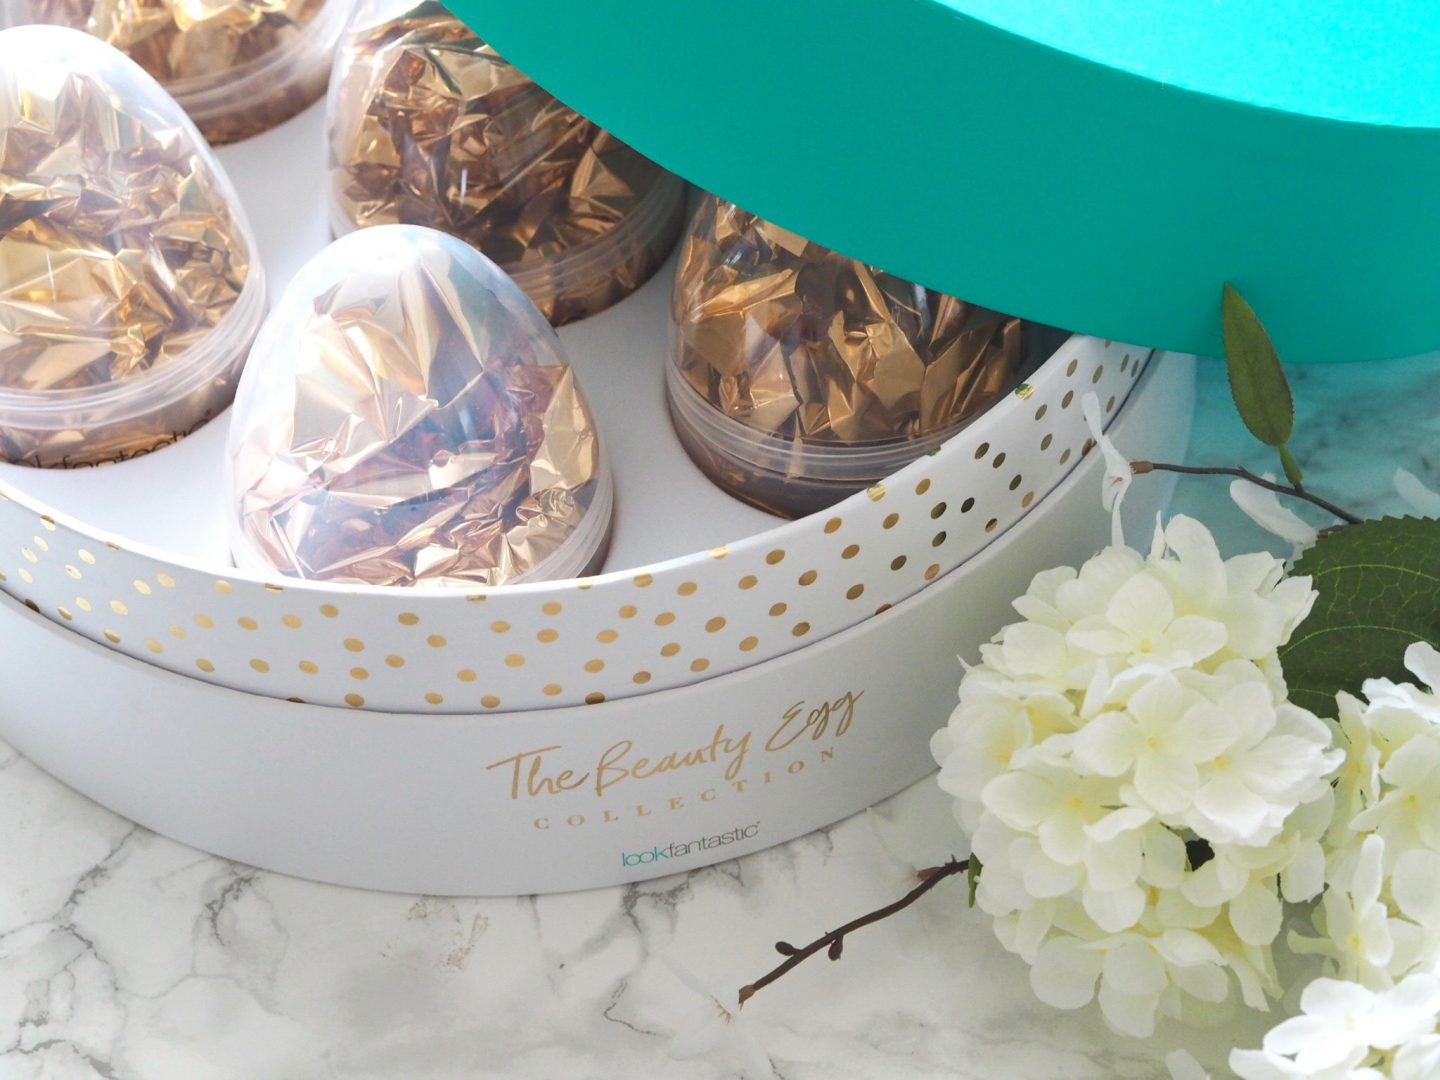 THE BEAUTY EGG COLLECTION - LOOKFANTASTIC